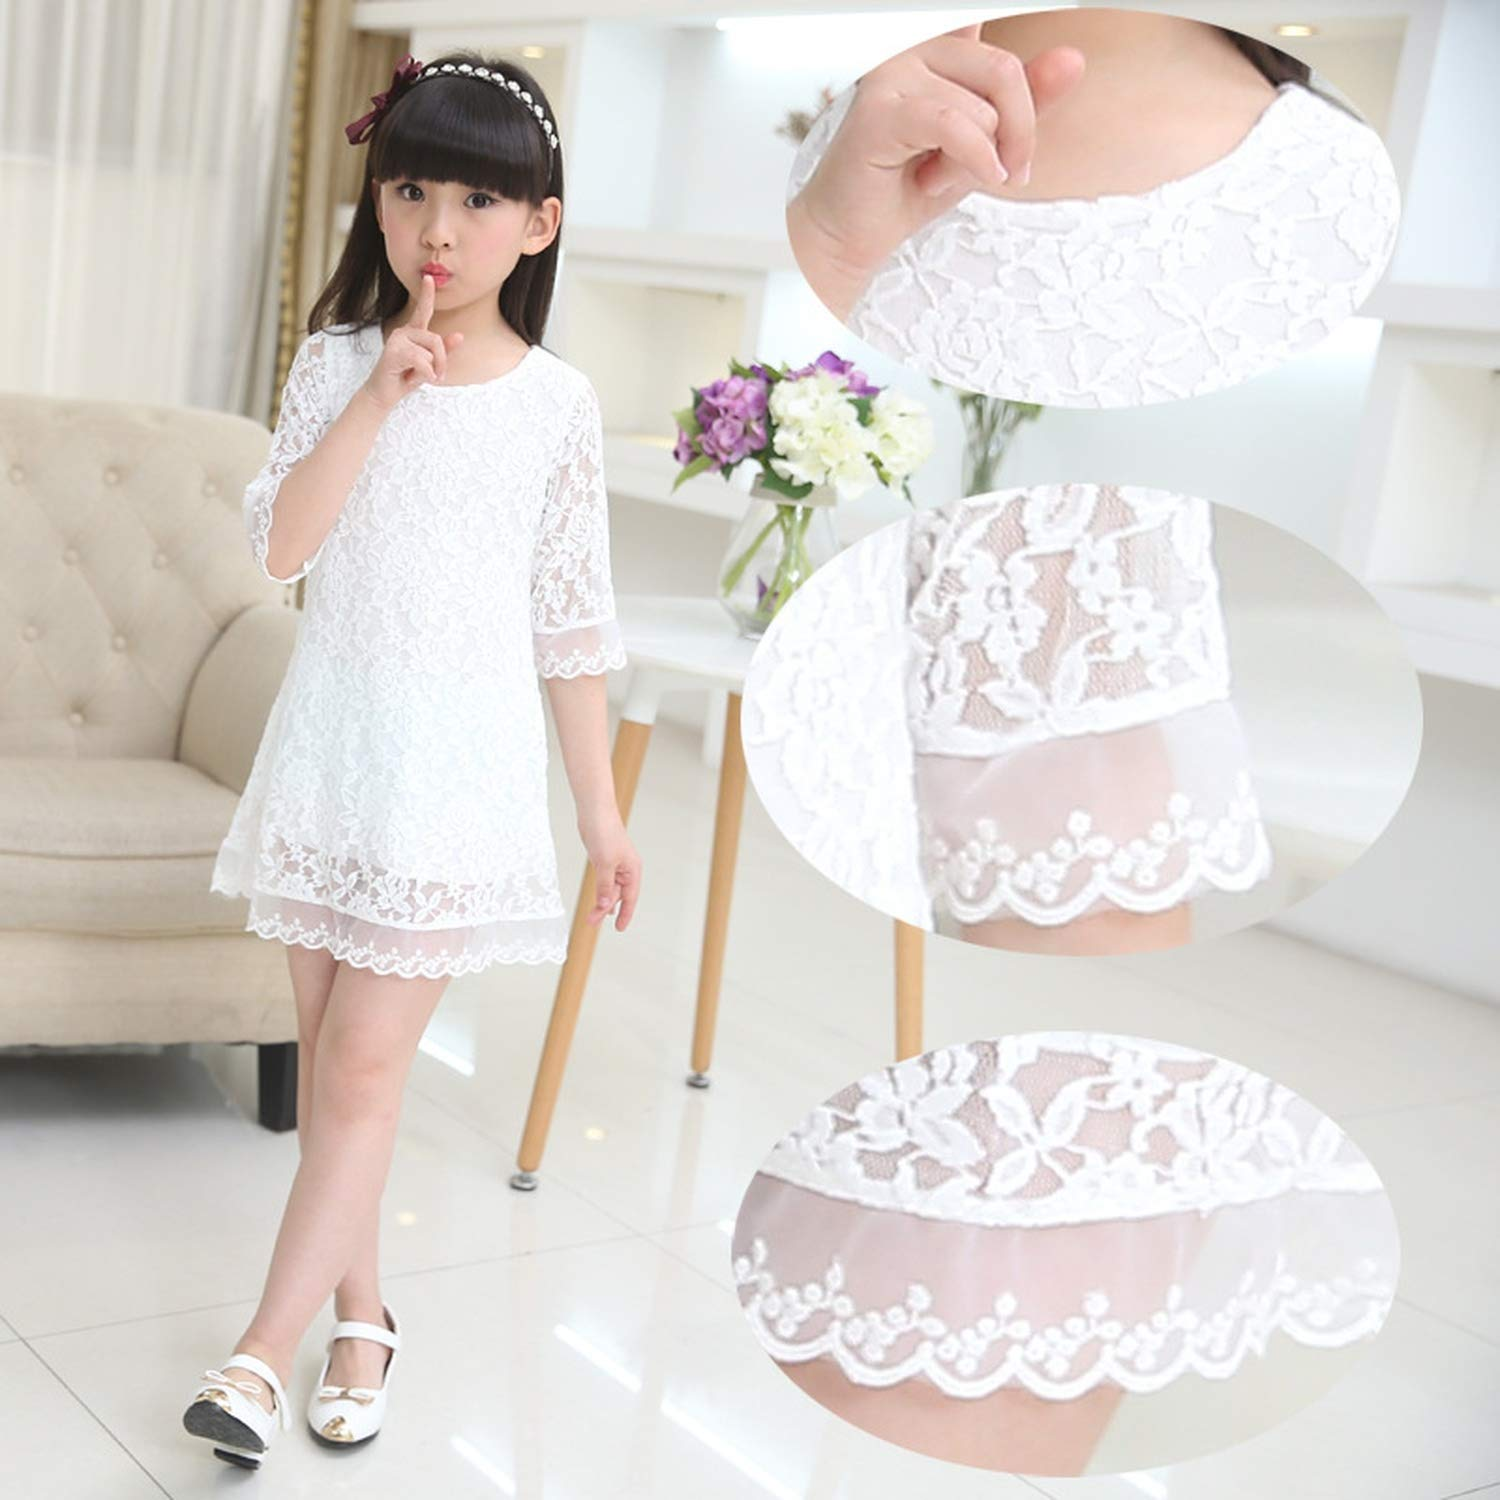 Kids 2018 Summer Autumn Lace Dress White Large Size Girls Dress Princess 3 4 6 8 10 12 14 16 18 Years Old Baby Girl,White,7 by Gooding Day (Image #4)